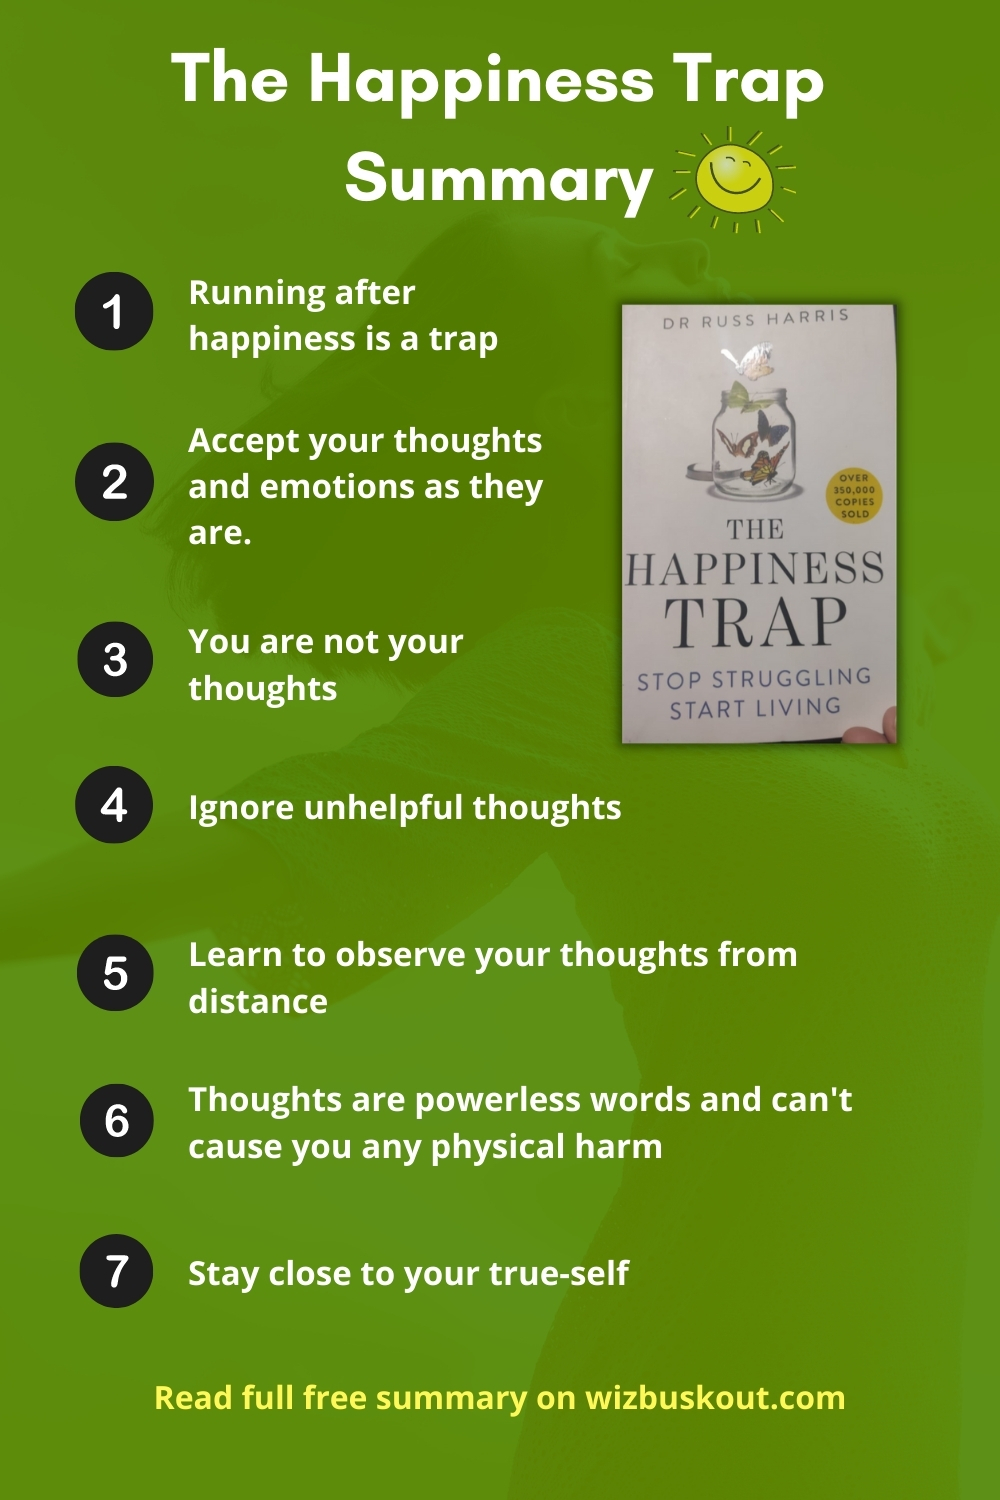 The Happiness Trap Summary Infographic